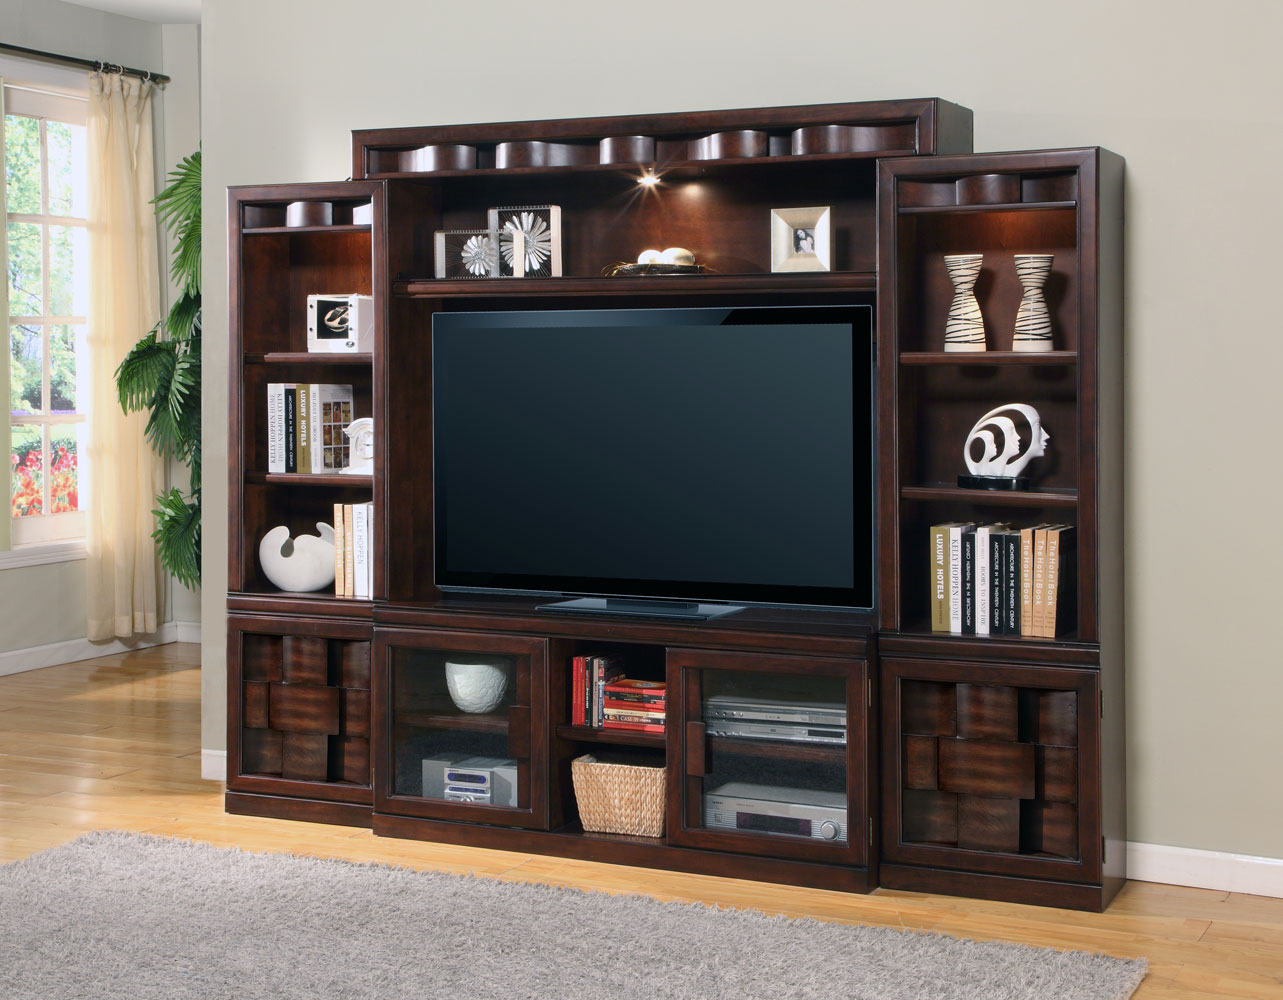 Parker house oslo 4pc wall entertainment center ph osl 101 4 at - How to decorate a wall unit ...